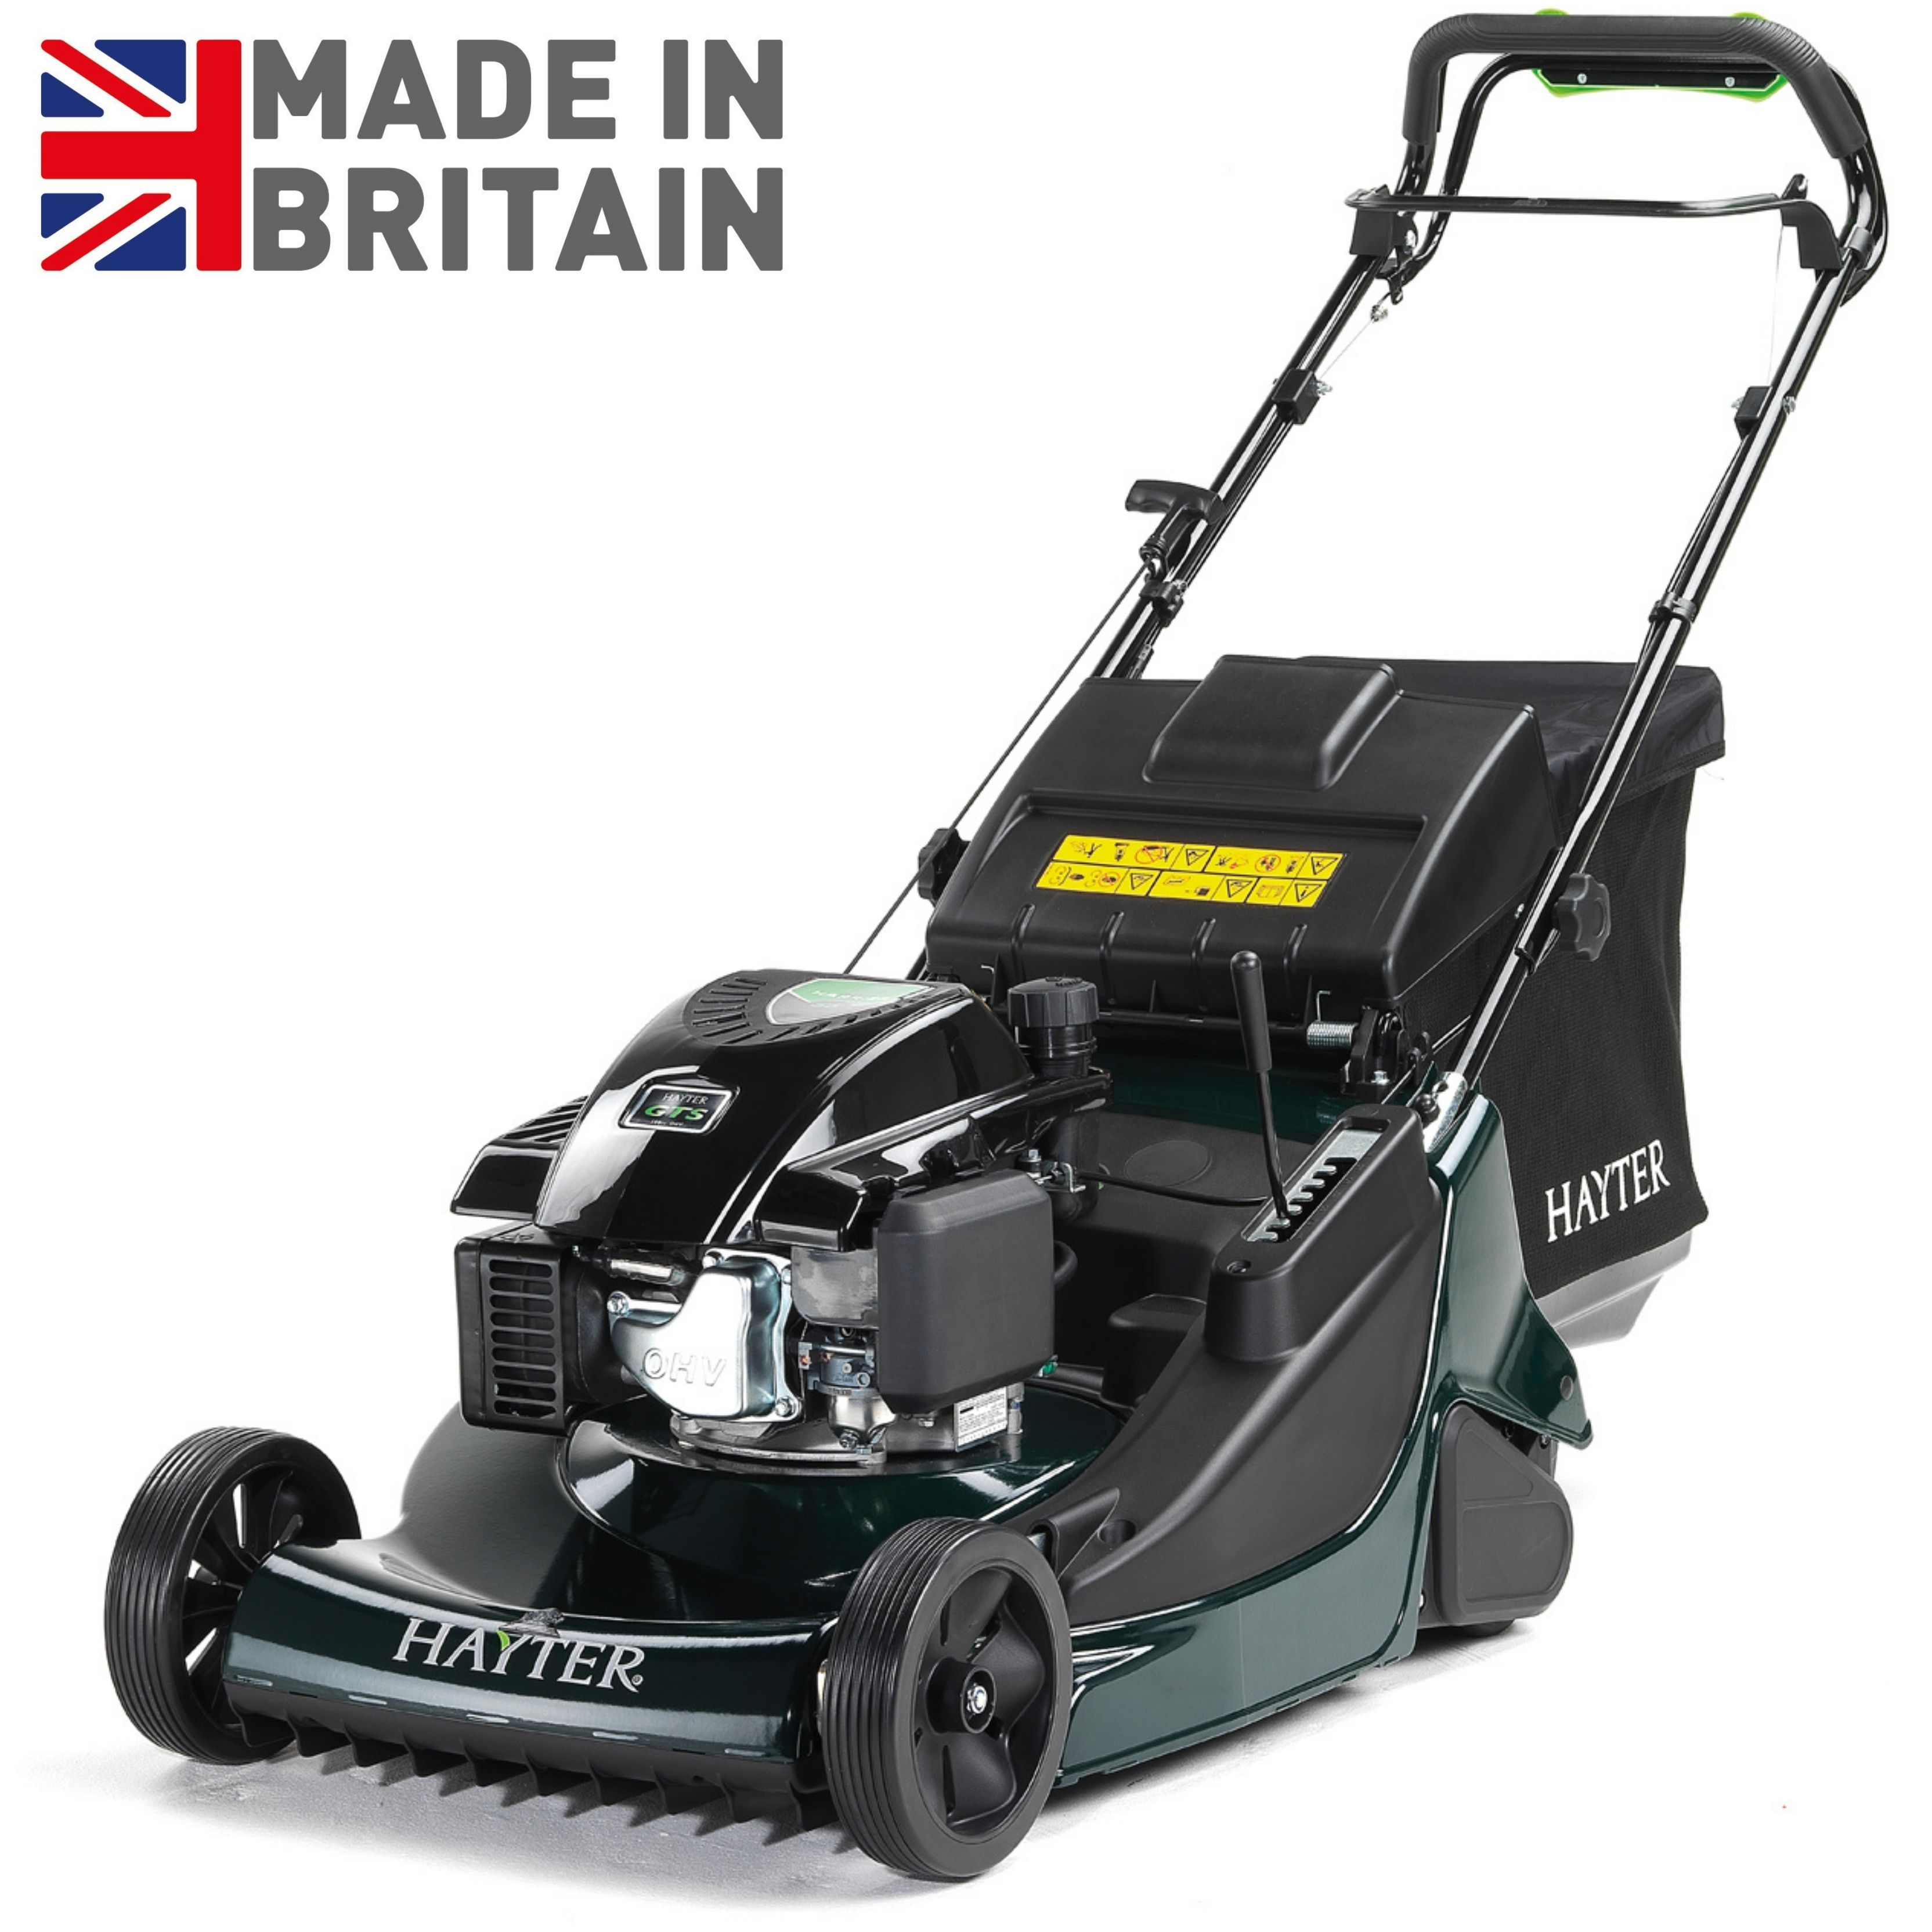 HAYTER Harrier 56 Petrol Lawnmower (Model 575A)